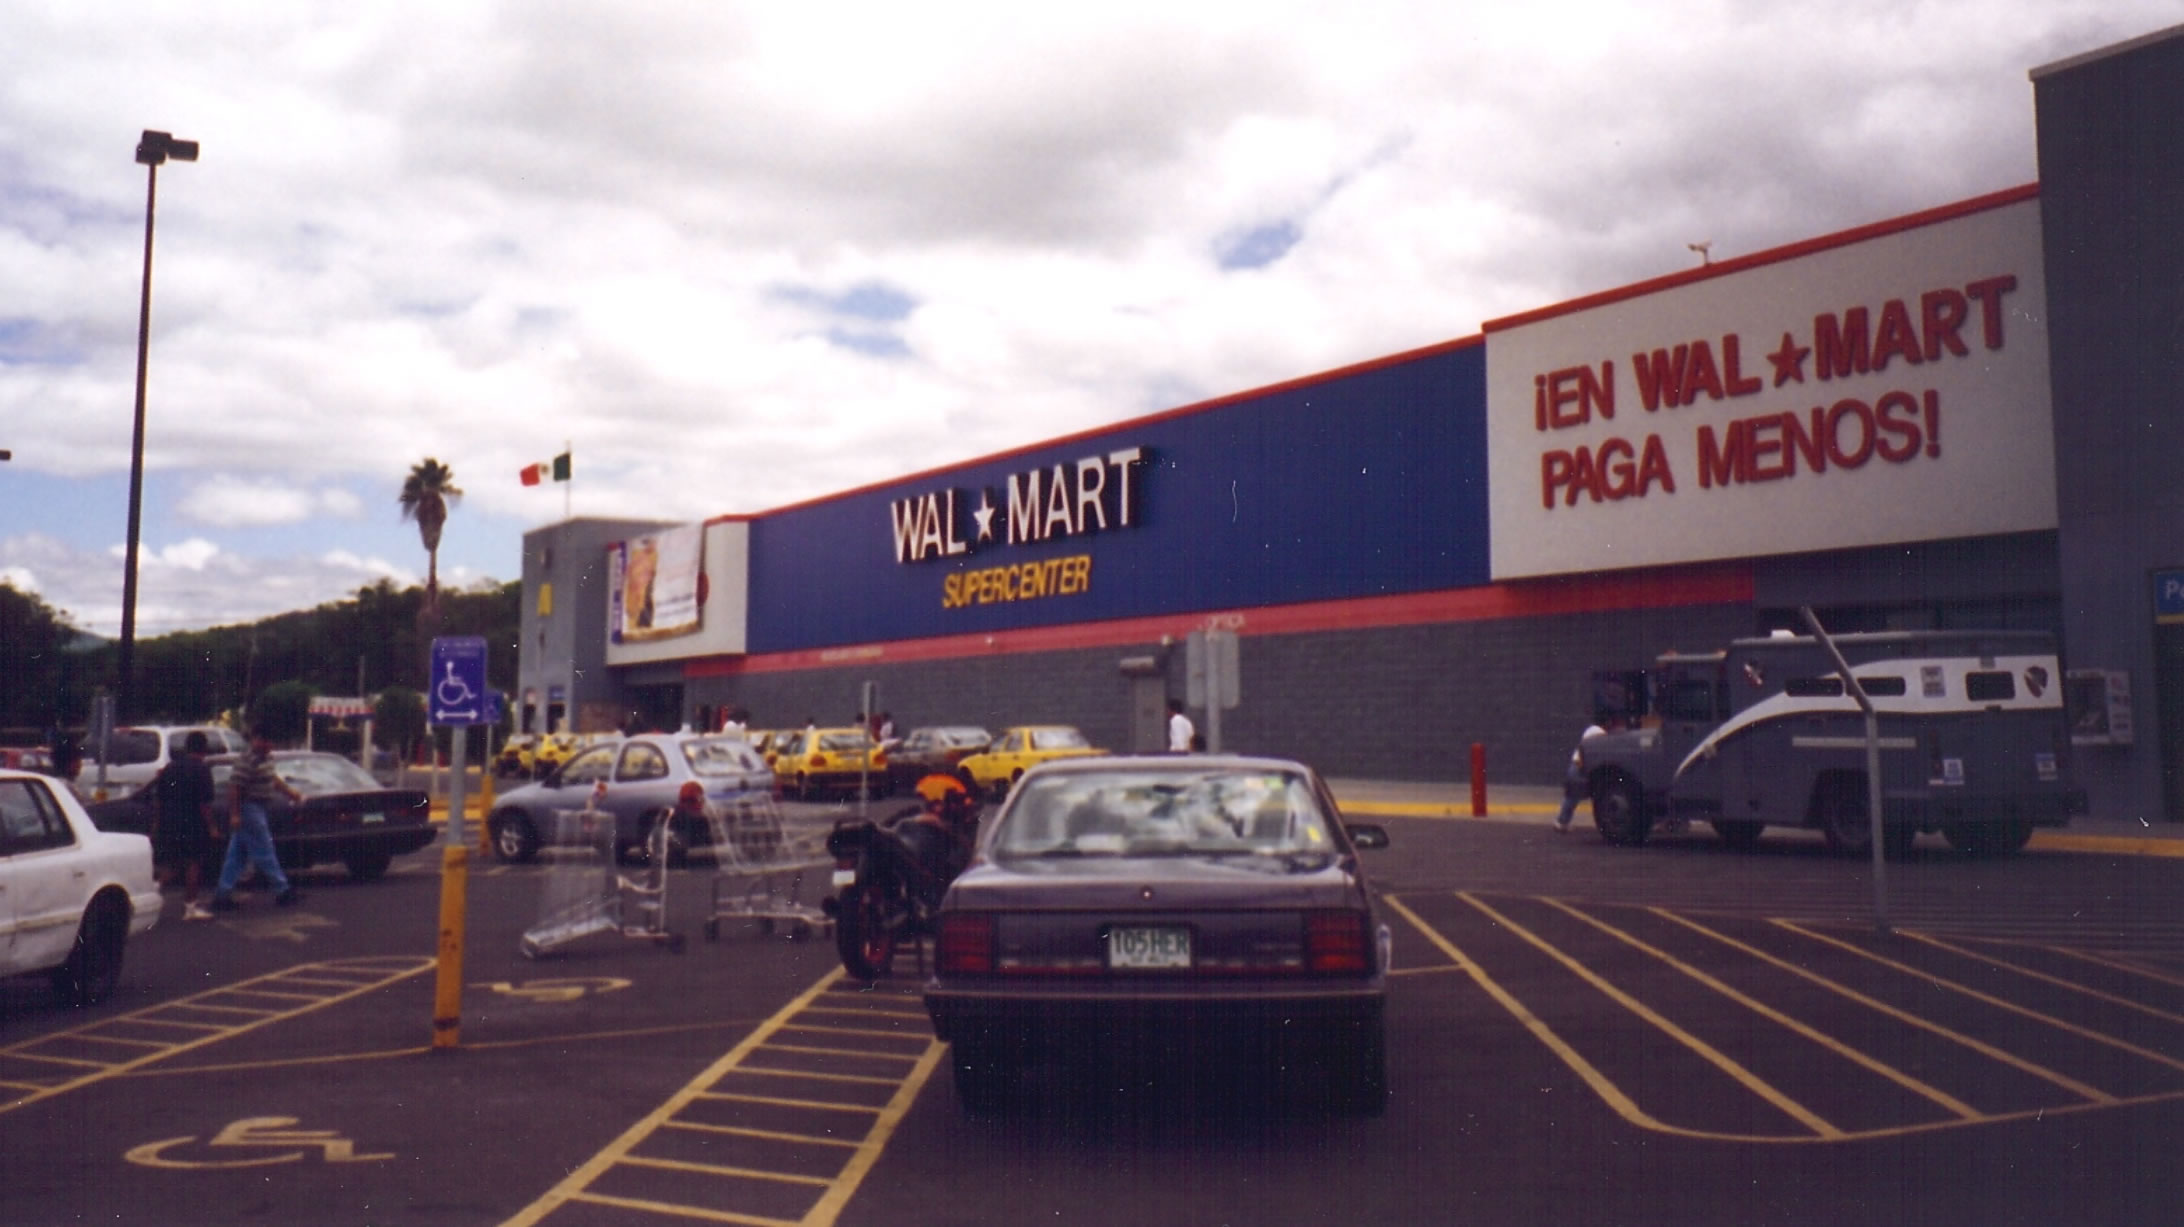 Wal-mart Stores Inc in Retailing